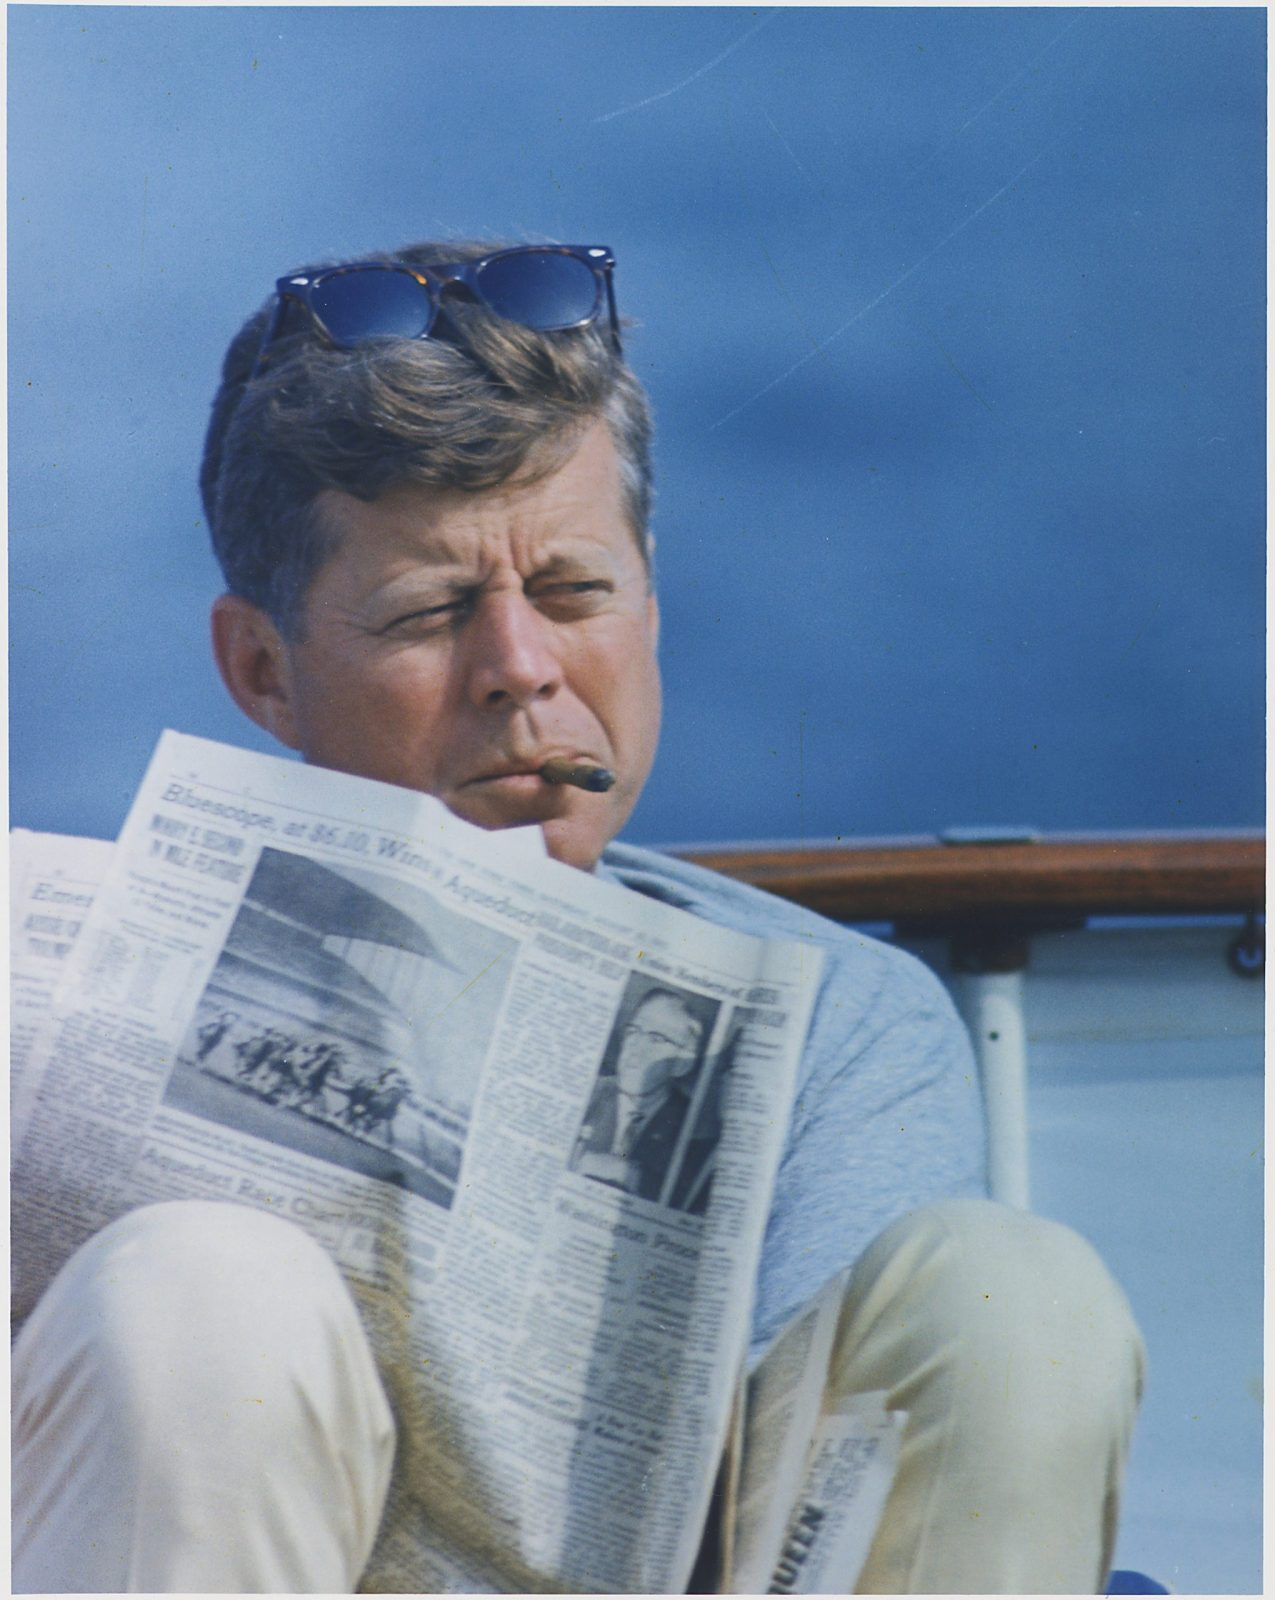 John F. Kennedy reading while smoking a cigar.